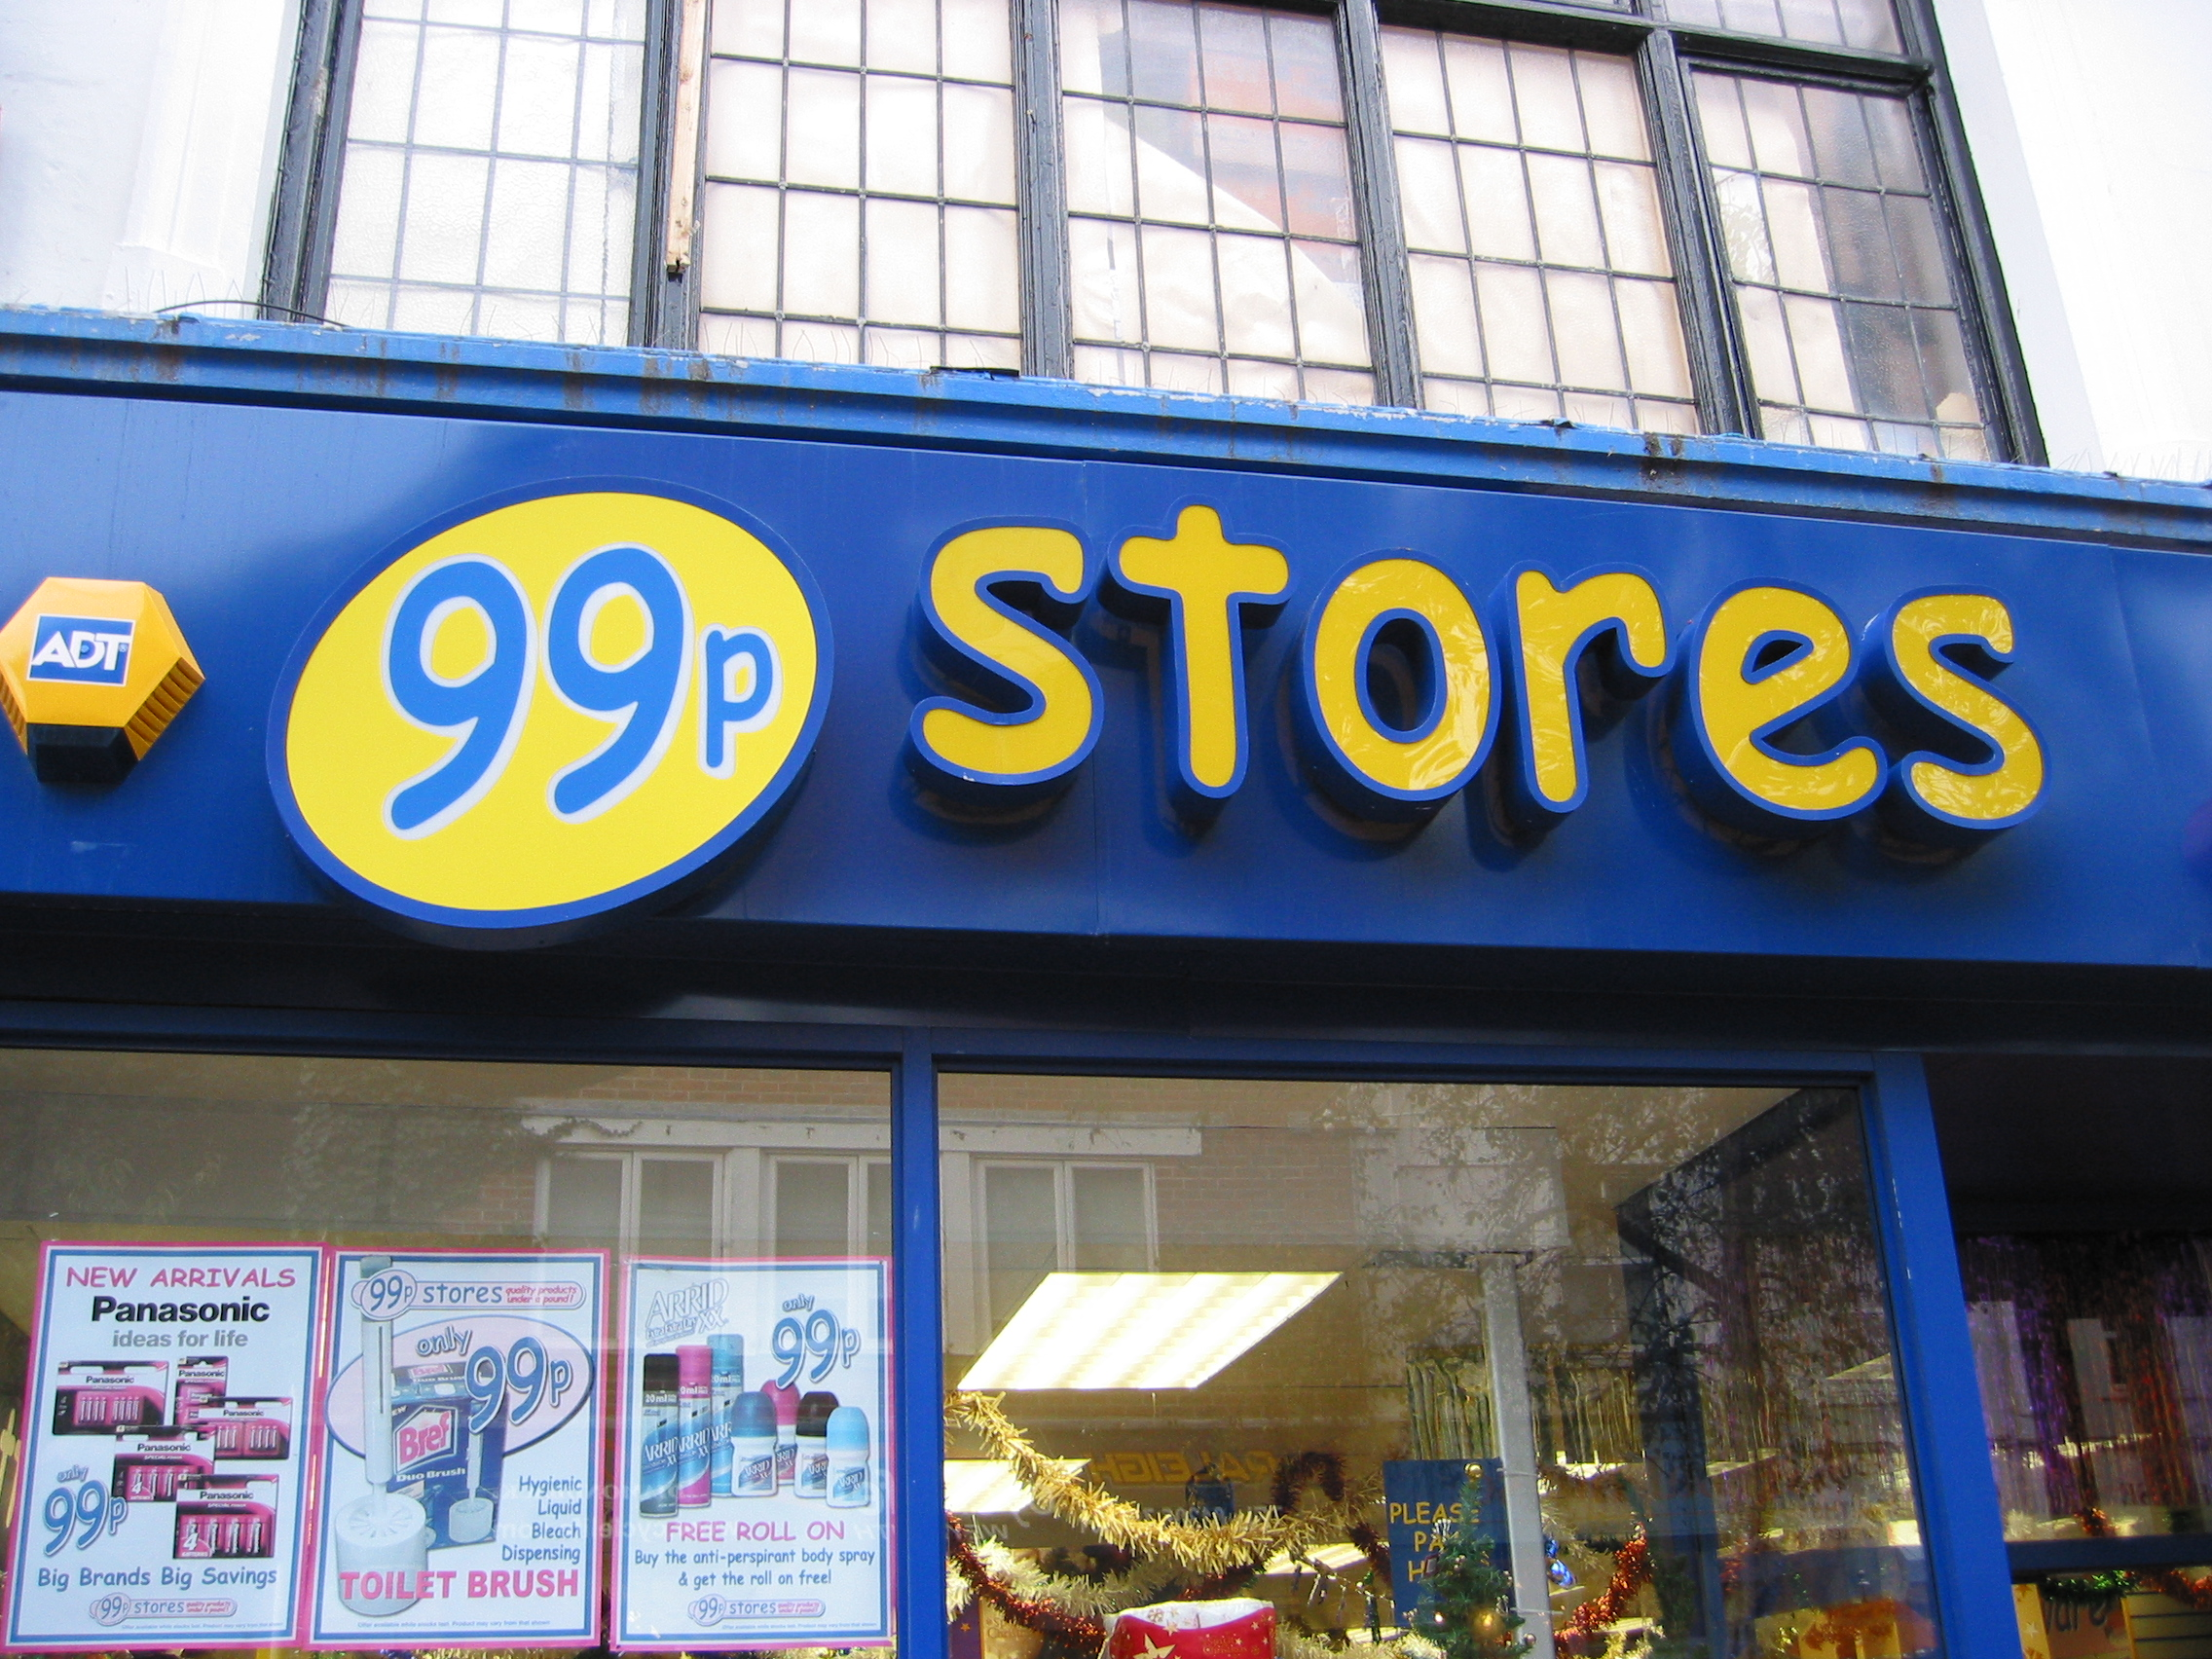 99p_stores_frontsign